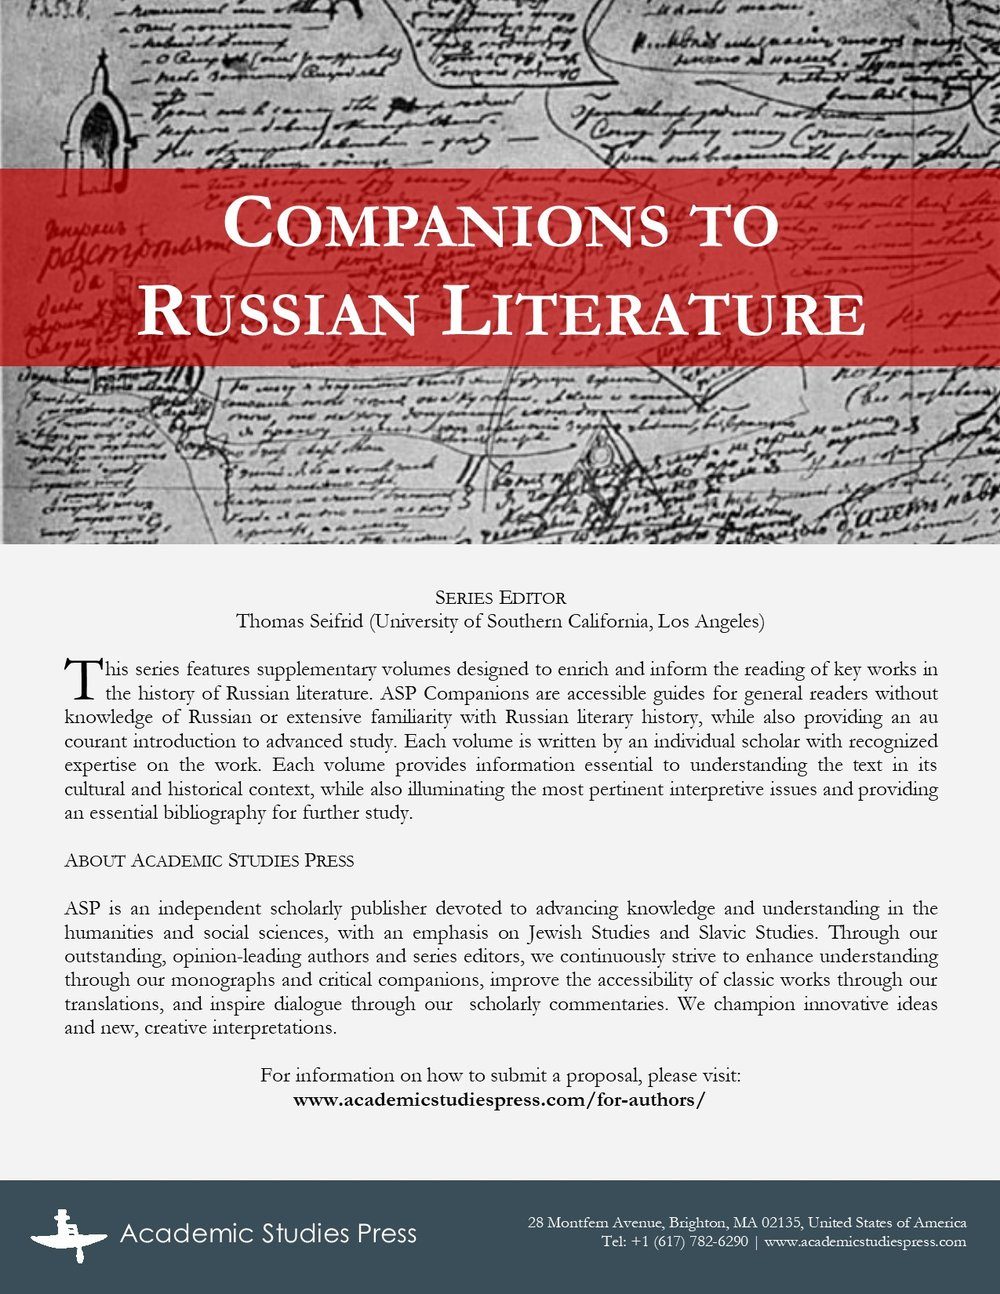 Companions to Russian Literature Flyer.jpg